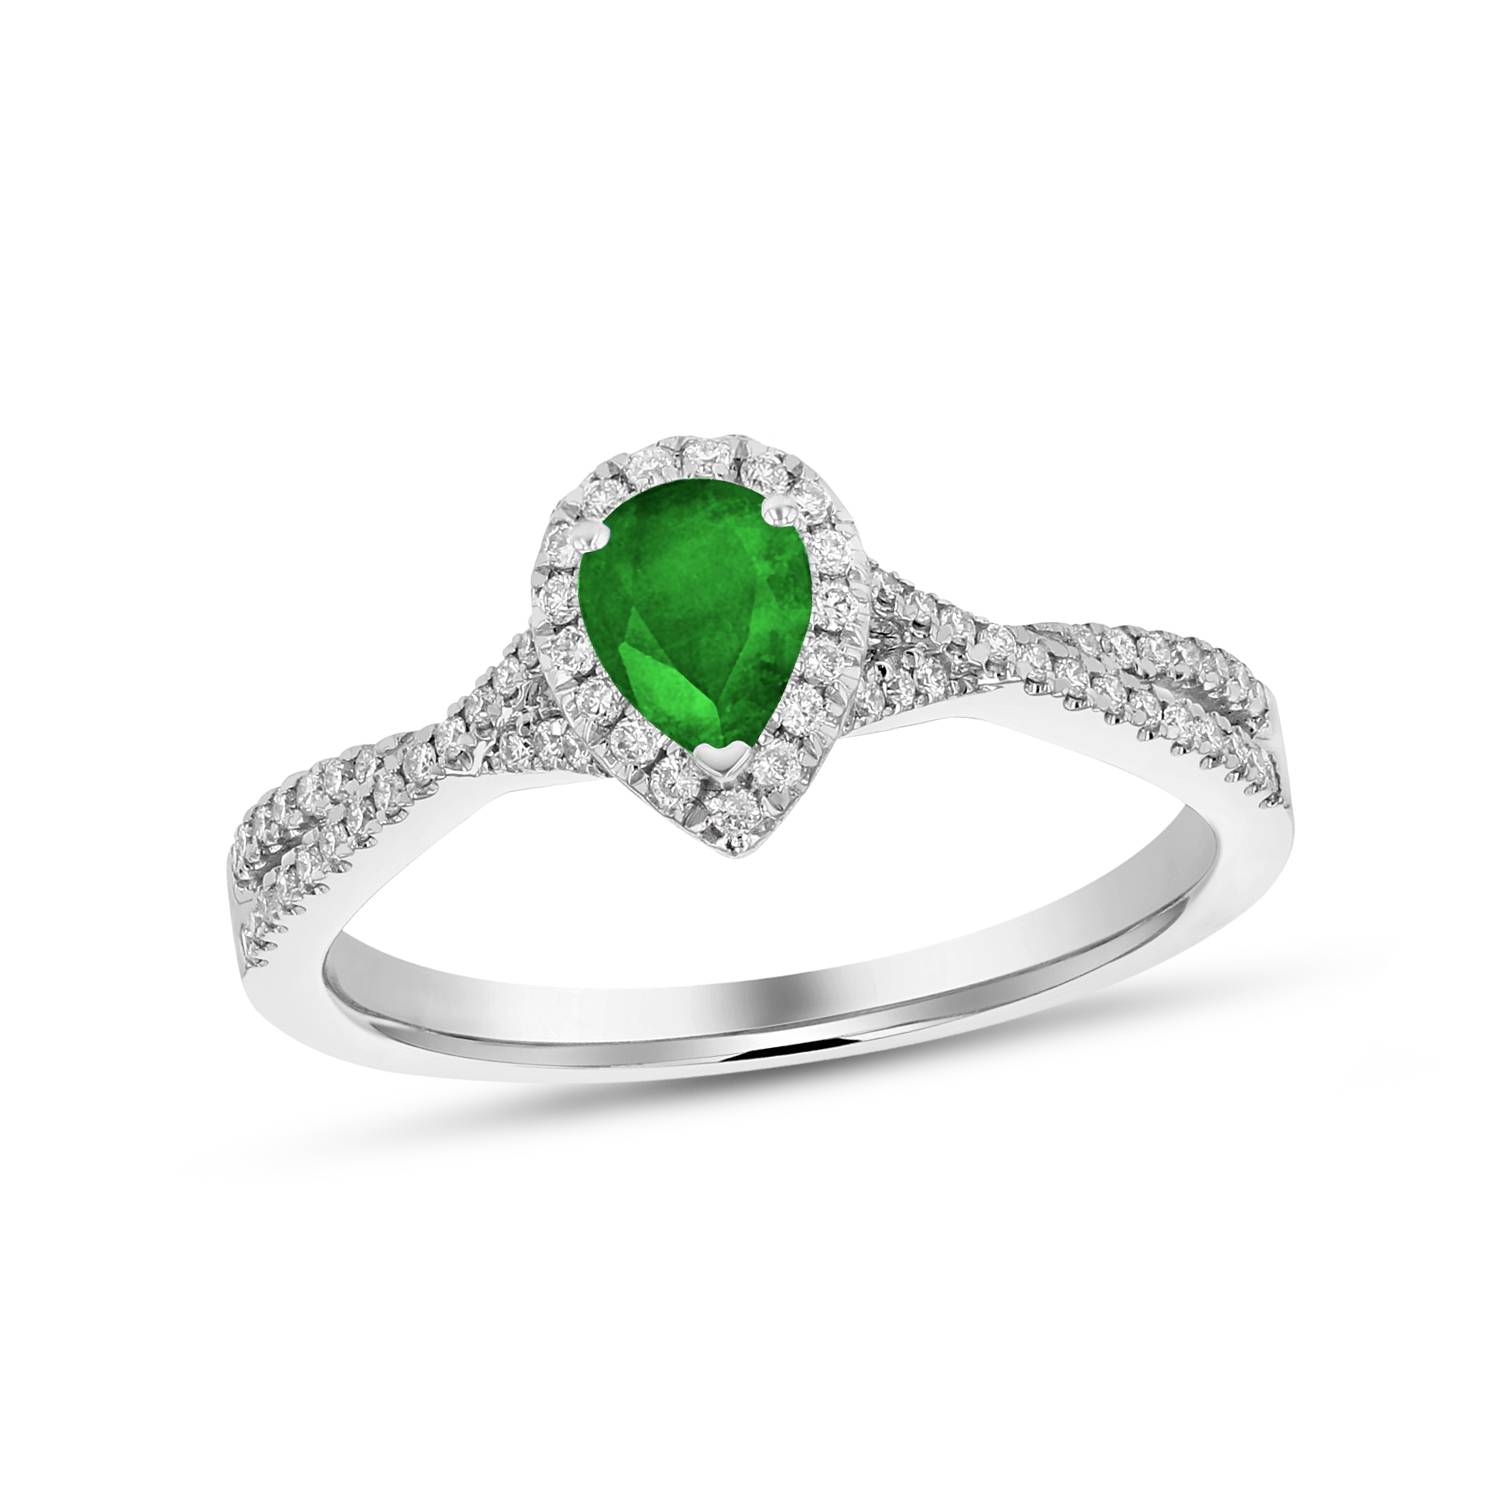 View 0.67ctw Diamnd and Pear Shaped Emerald Ring in 18k White Gold